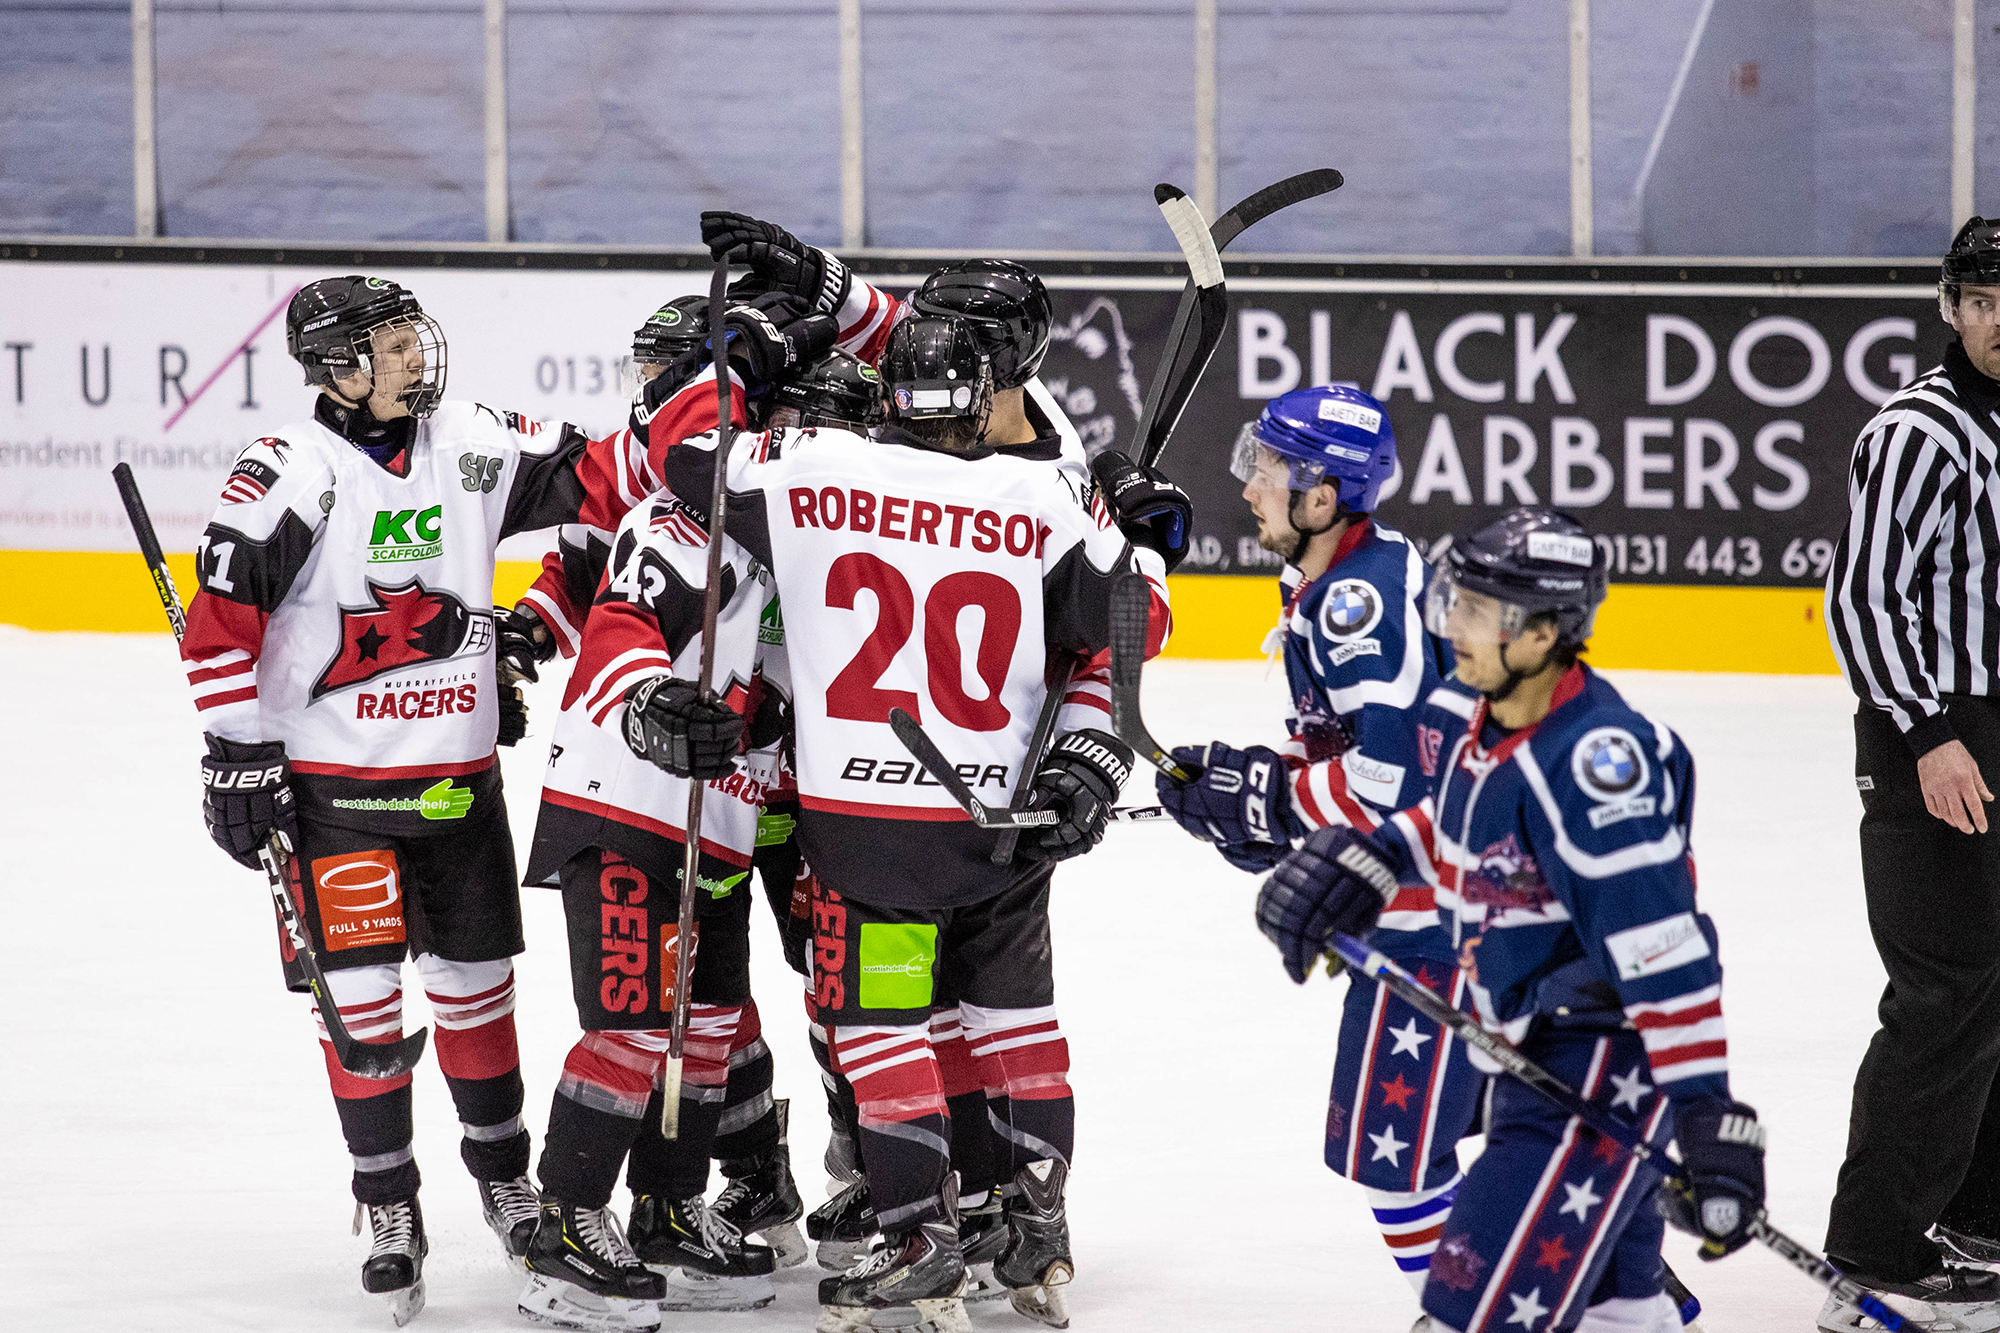 Murrayfield Racers vs Dundee Comets